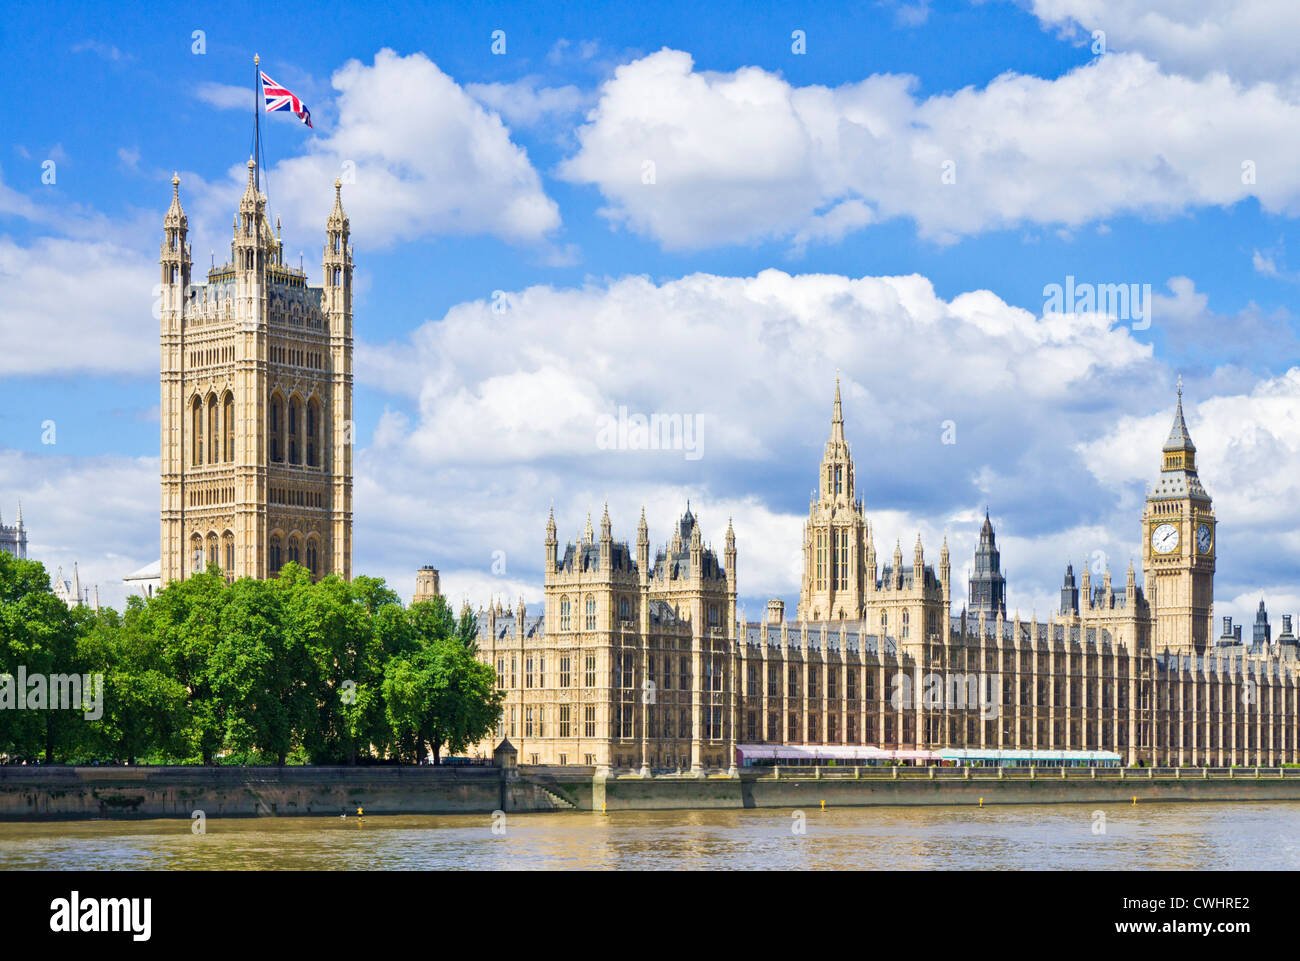 London Skyline London Houses of Parliament London Big Ben London city of london city london cityscape union flag - Stock Image